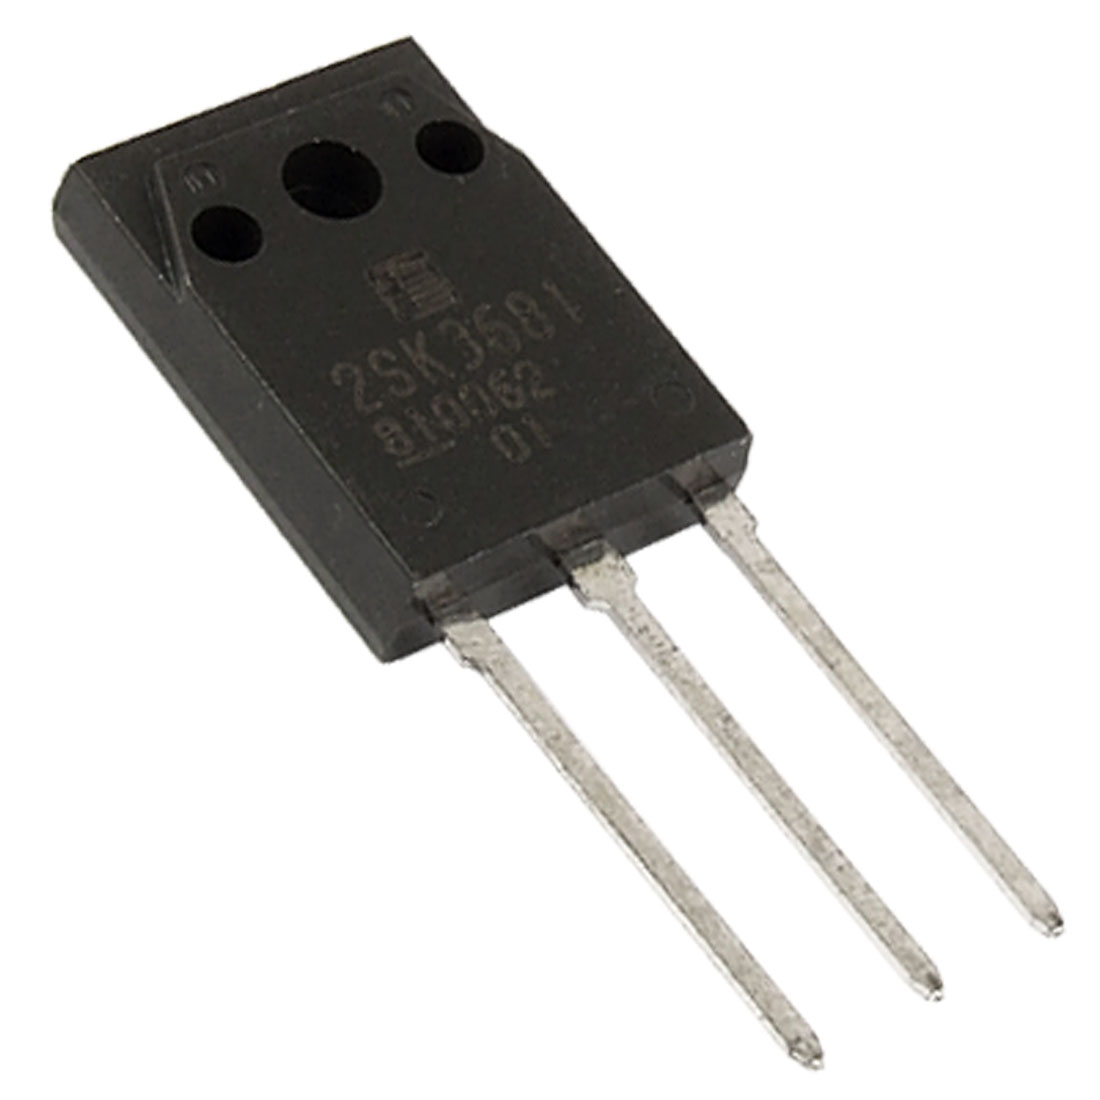 2SK3681 600V 43A High Speed Switching N-channel Power MOSFET